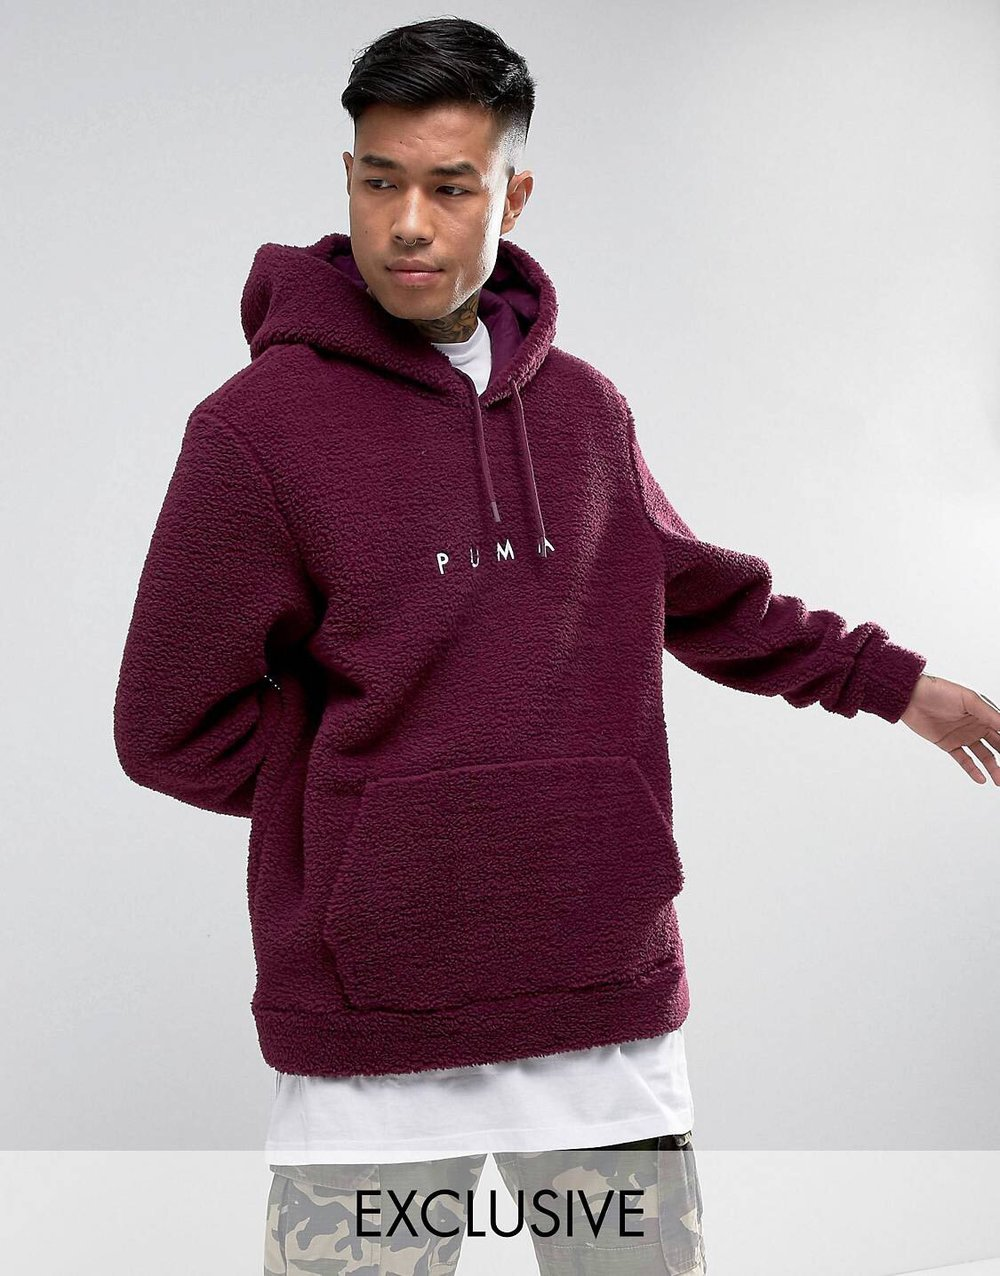 £60 - Puma Borg Hoodie - This looks like a hug and I'm ready to be engulfed in all it's goodness.